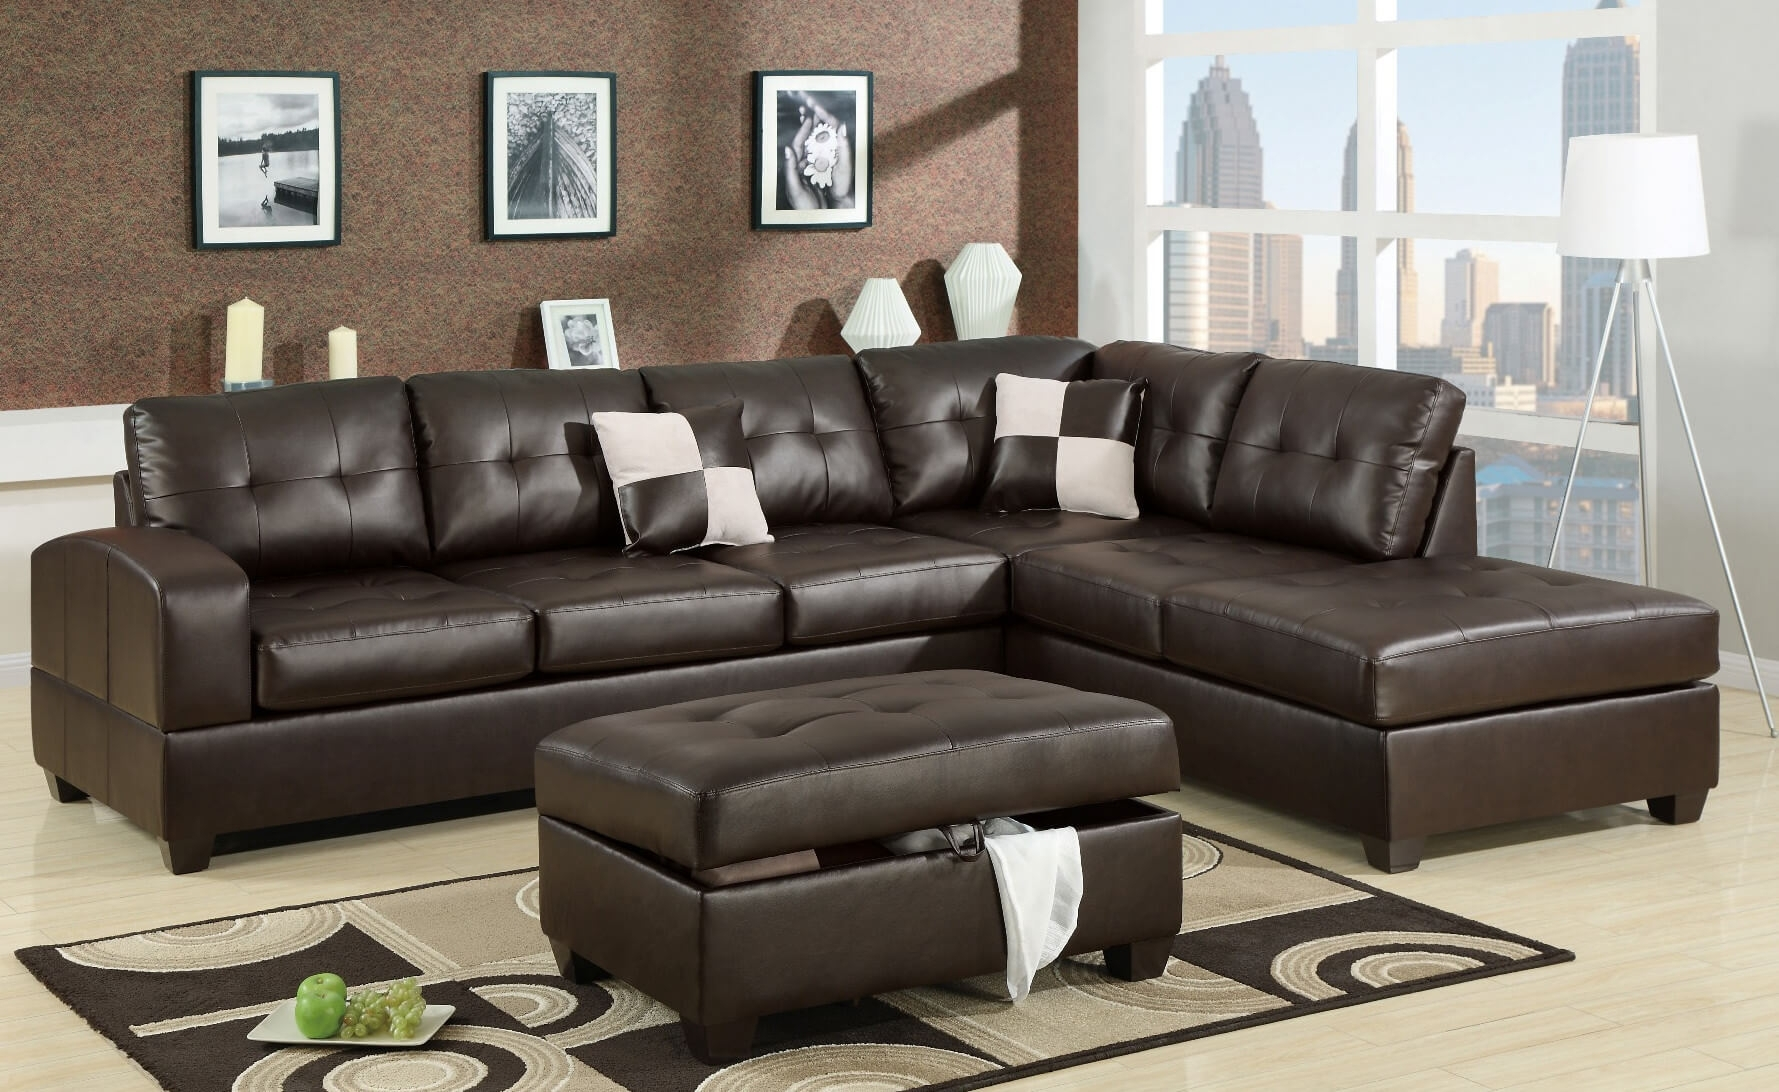 100 Awesome Sectional Sofas Under $1,000 (2018) inside Sectional Sofas Under 1000